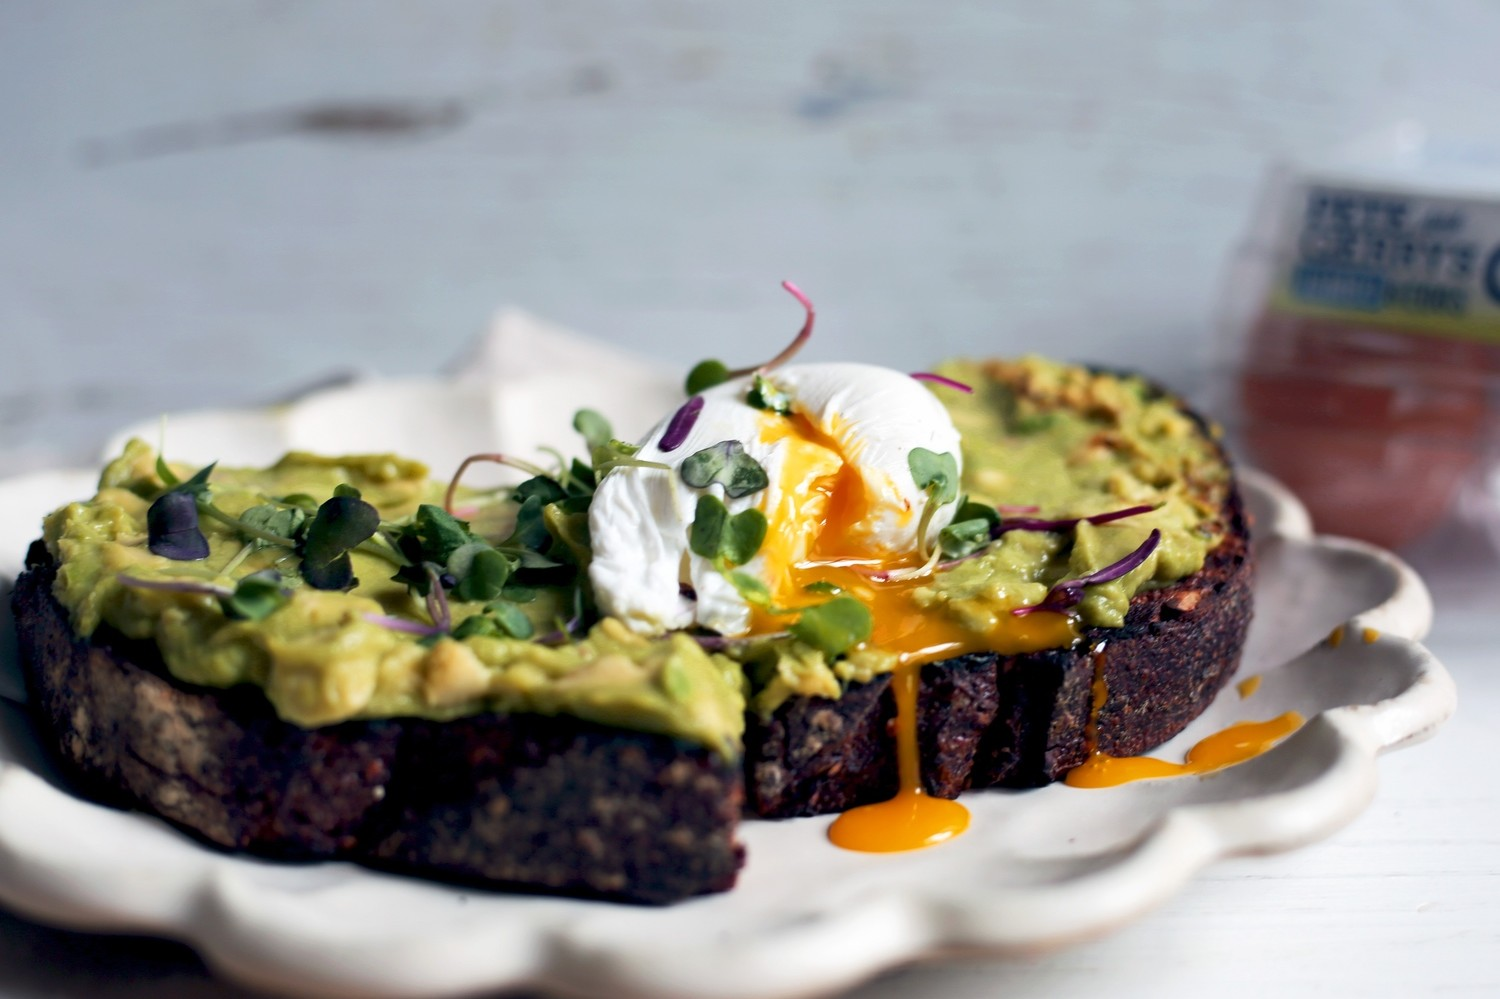 Toasted slice of sourdough bread topped with mashed avocado, microgreens, a runny poached organic egg, and a drizzle of CBD-infused coconut oil. | peteandgerrys.com